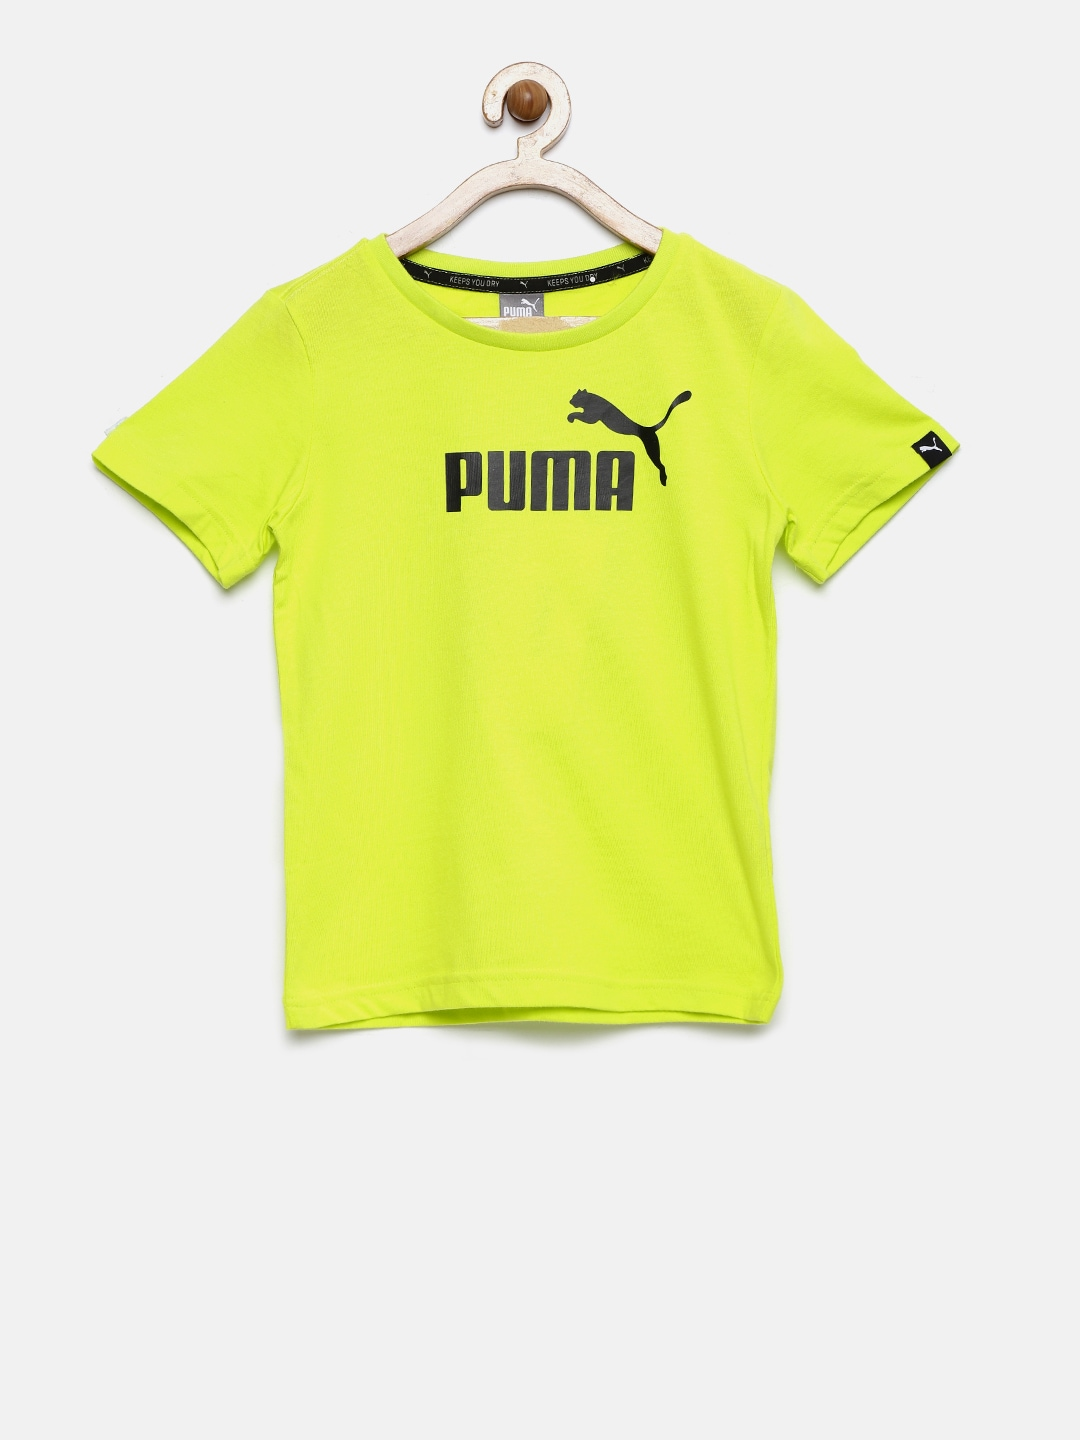 65b3dbb19c21 Puma T shirts - Buy Puma T Shirts For Men   Women Online in India